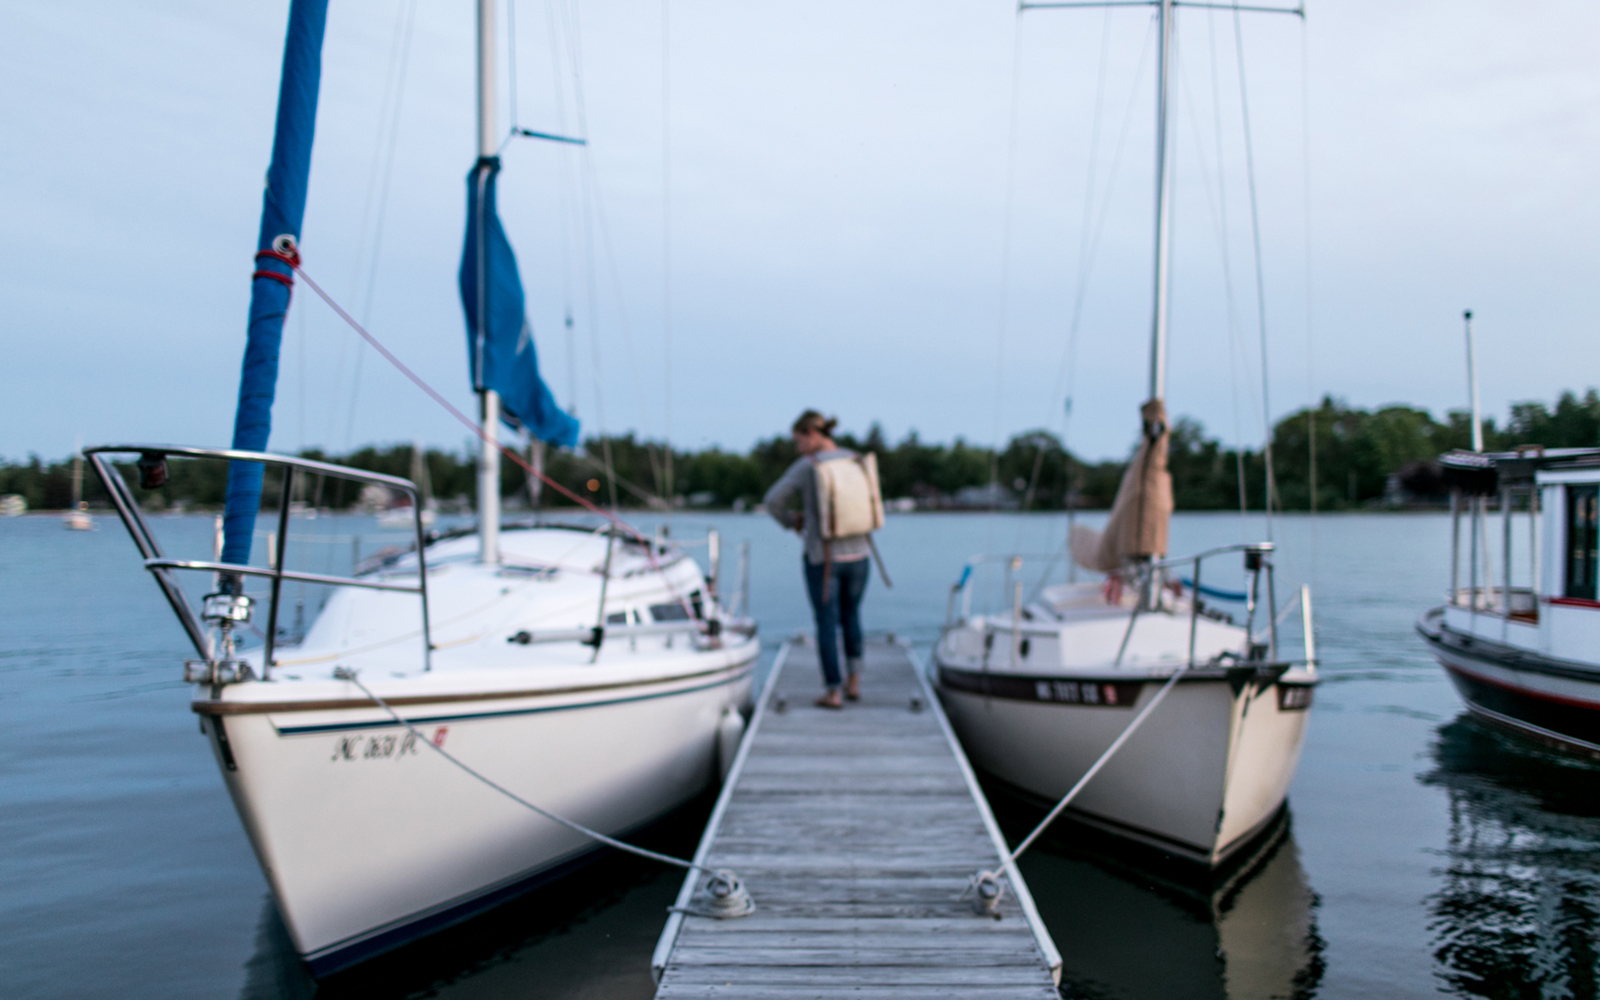 An ode to Summer evenings in Michigan. The Fresh Exchange